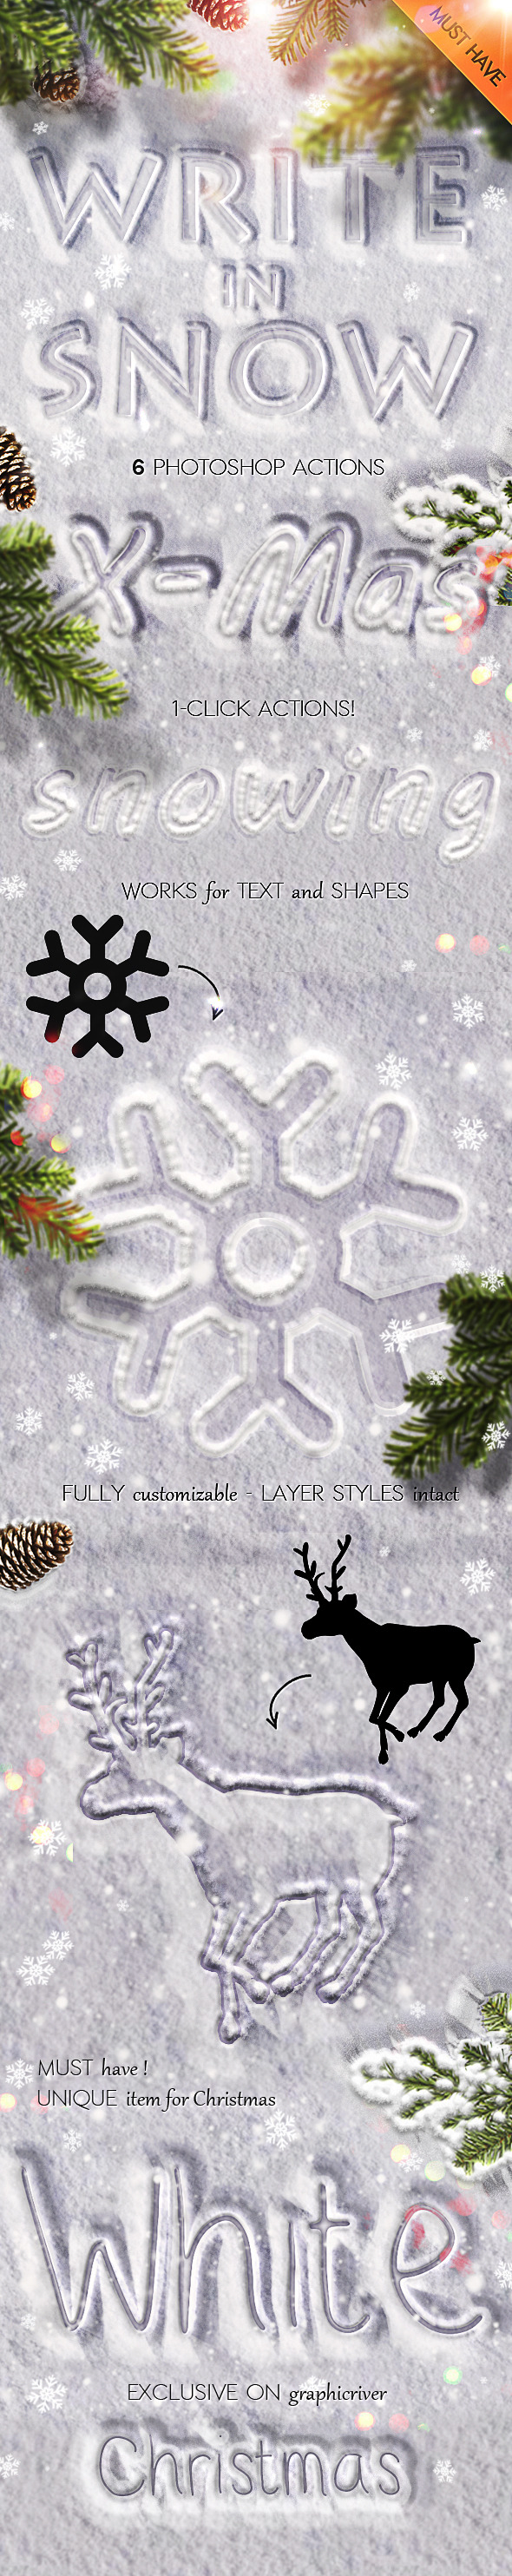 GraphicRiver Snow Writing Photoshop Actions for Winter Time 9442971